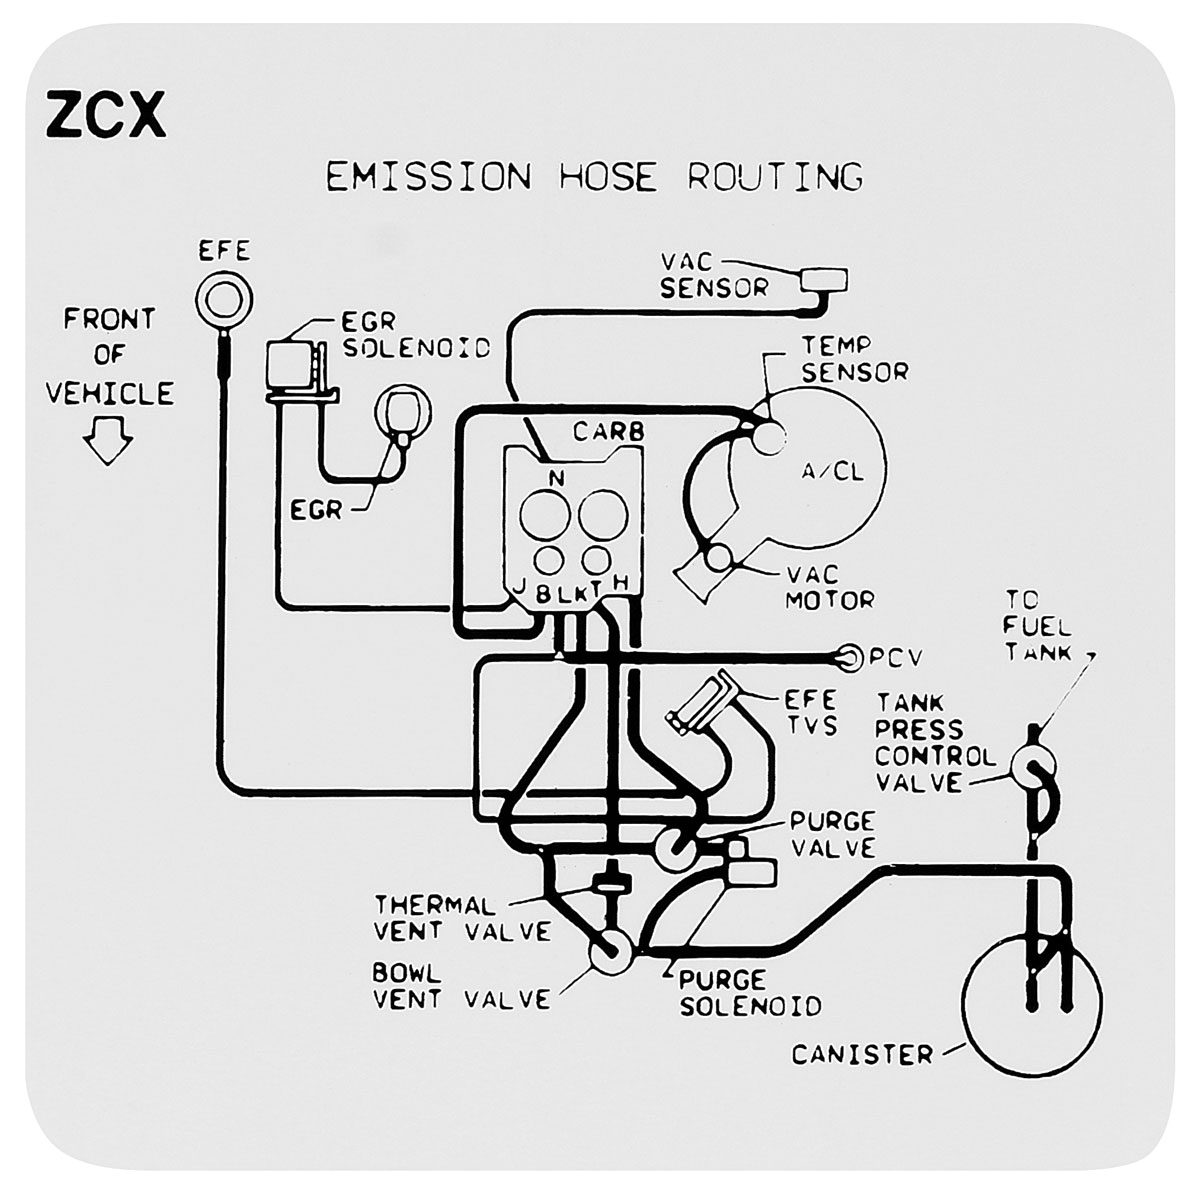 Emissions Decal Monte Carlo 5 0 Emission Hose Routing Zcx Opgi